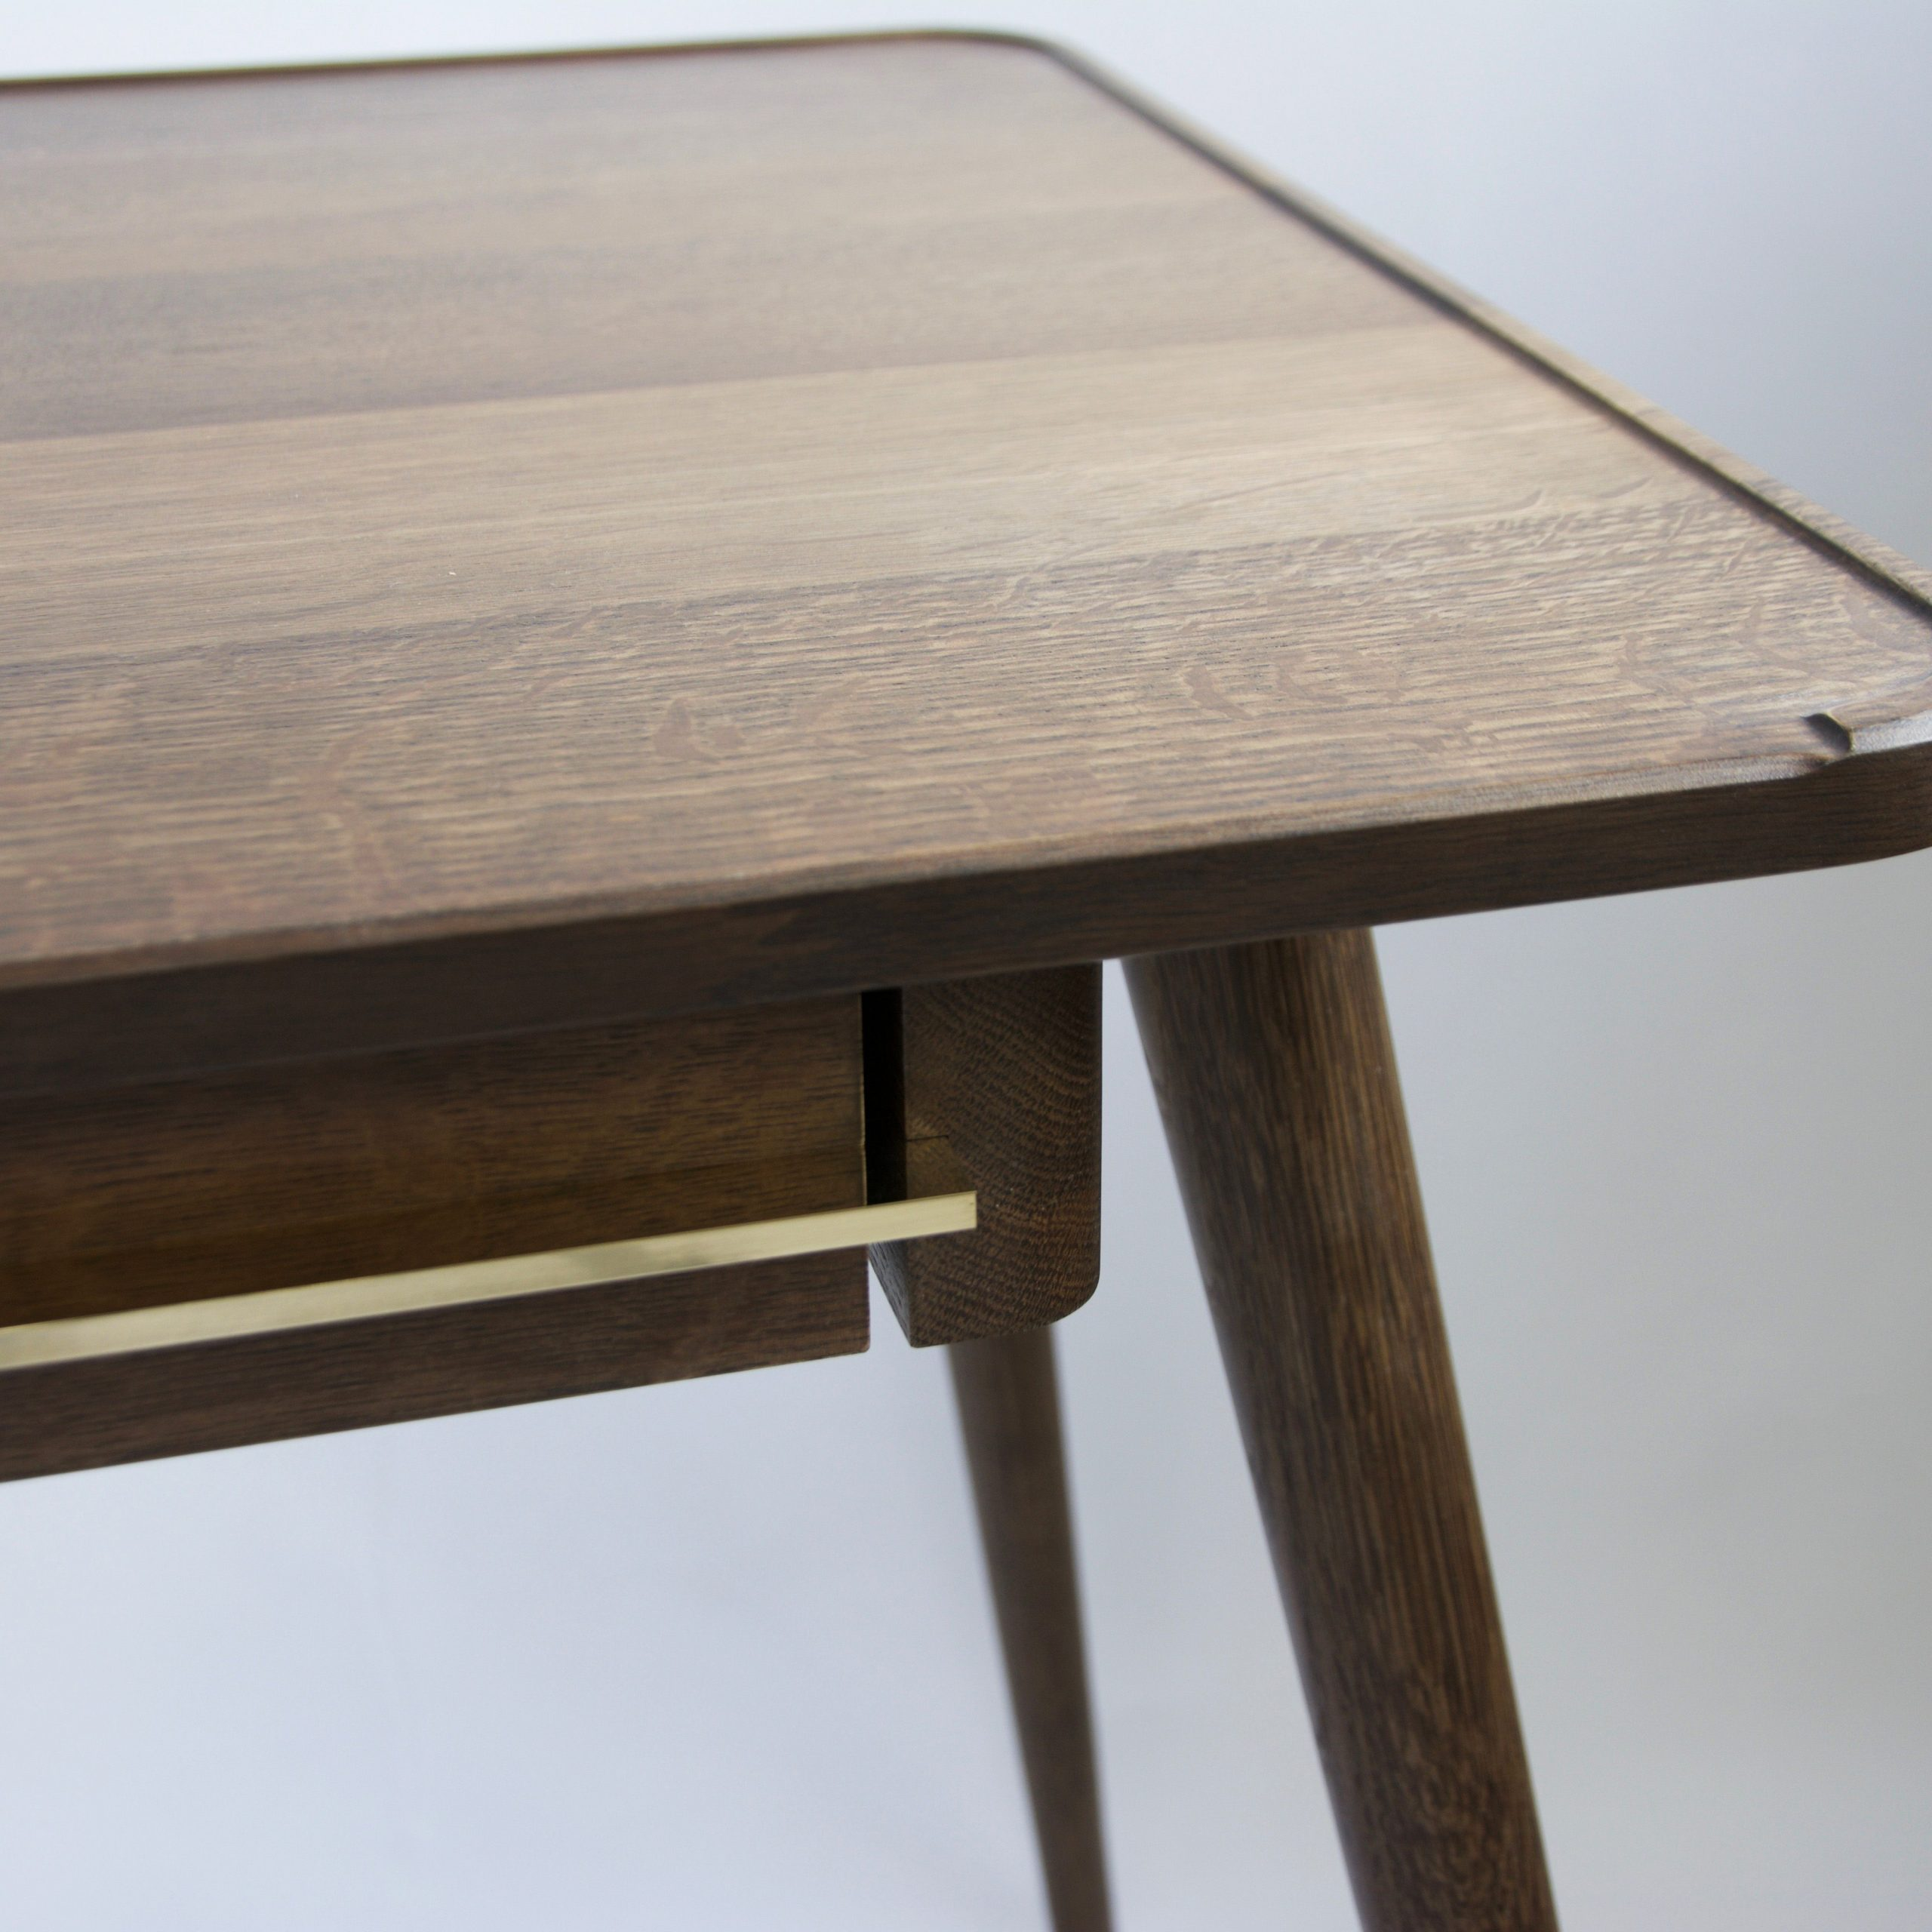 Fumed Oak Dining Tables With Regard To Newest Wall's Desk – Fumed Oak Writing Desk With Brass Detailing (View 11 of 25)